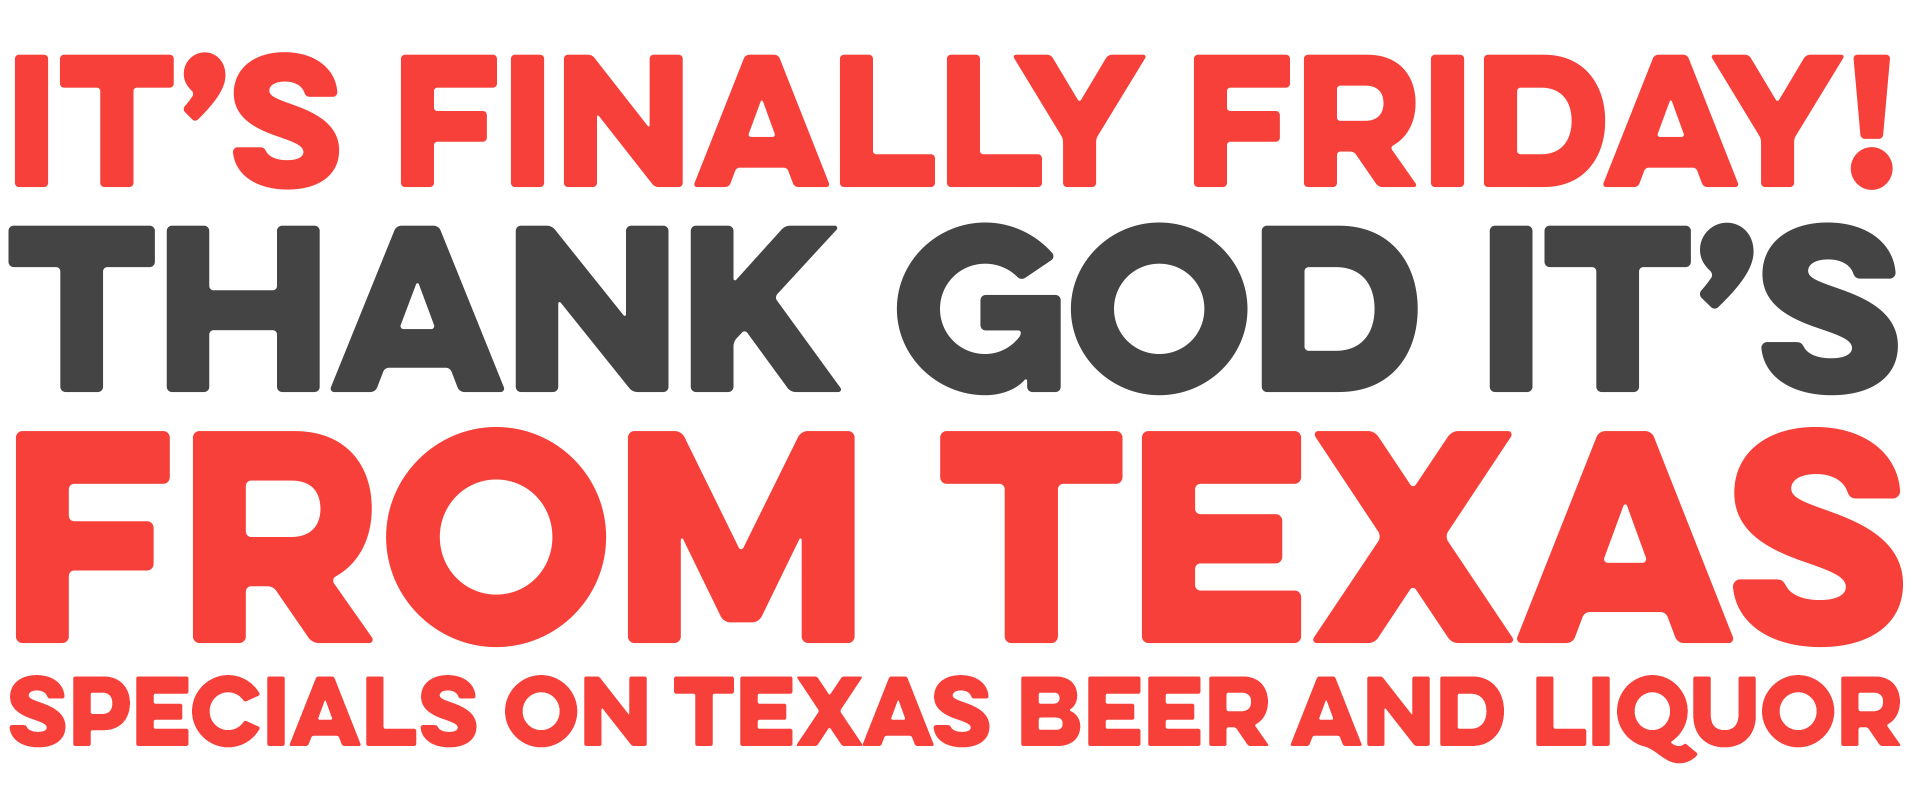 It's finally Friday! Specials on Texas beer and liquor.